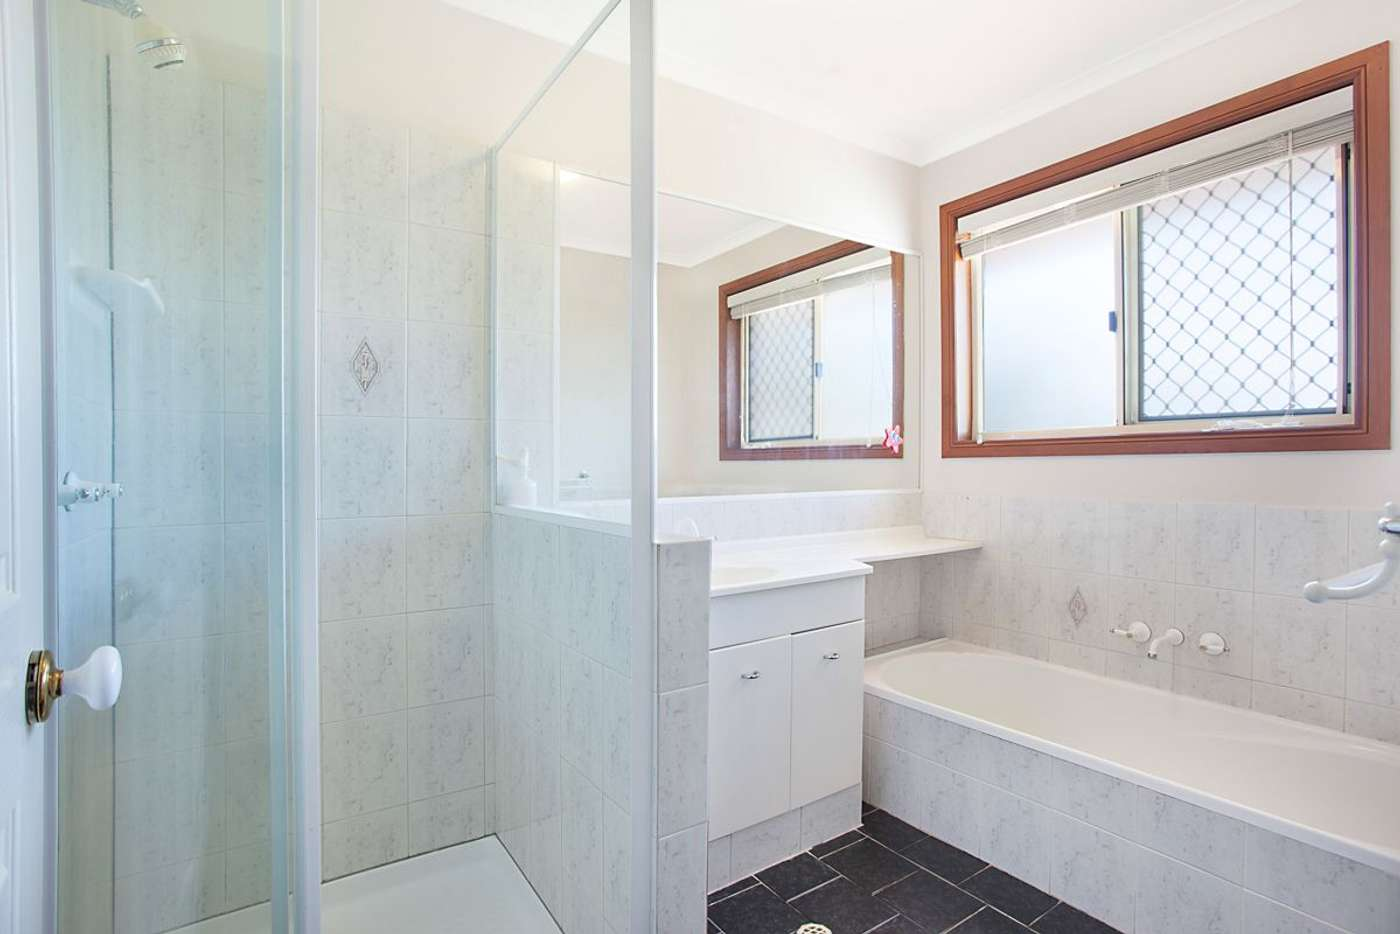 Seventh view of Homely house listing, 25 Winchcombe Avenue, Murrumba Downs QLD 4503